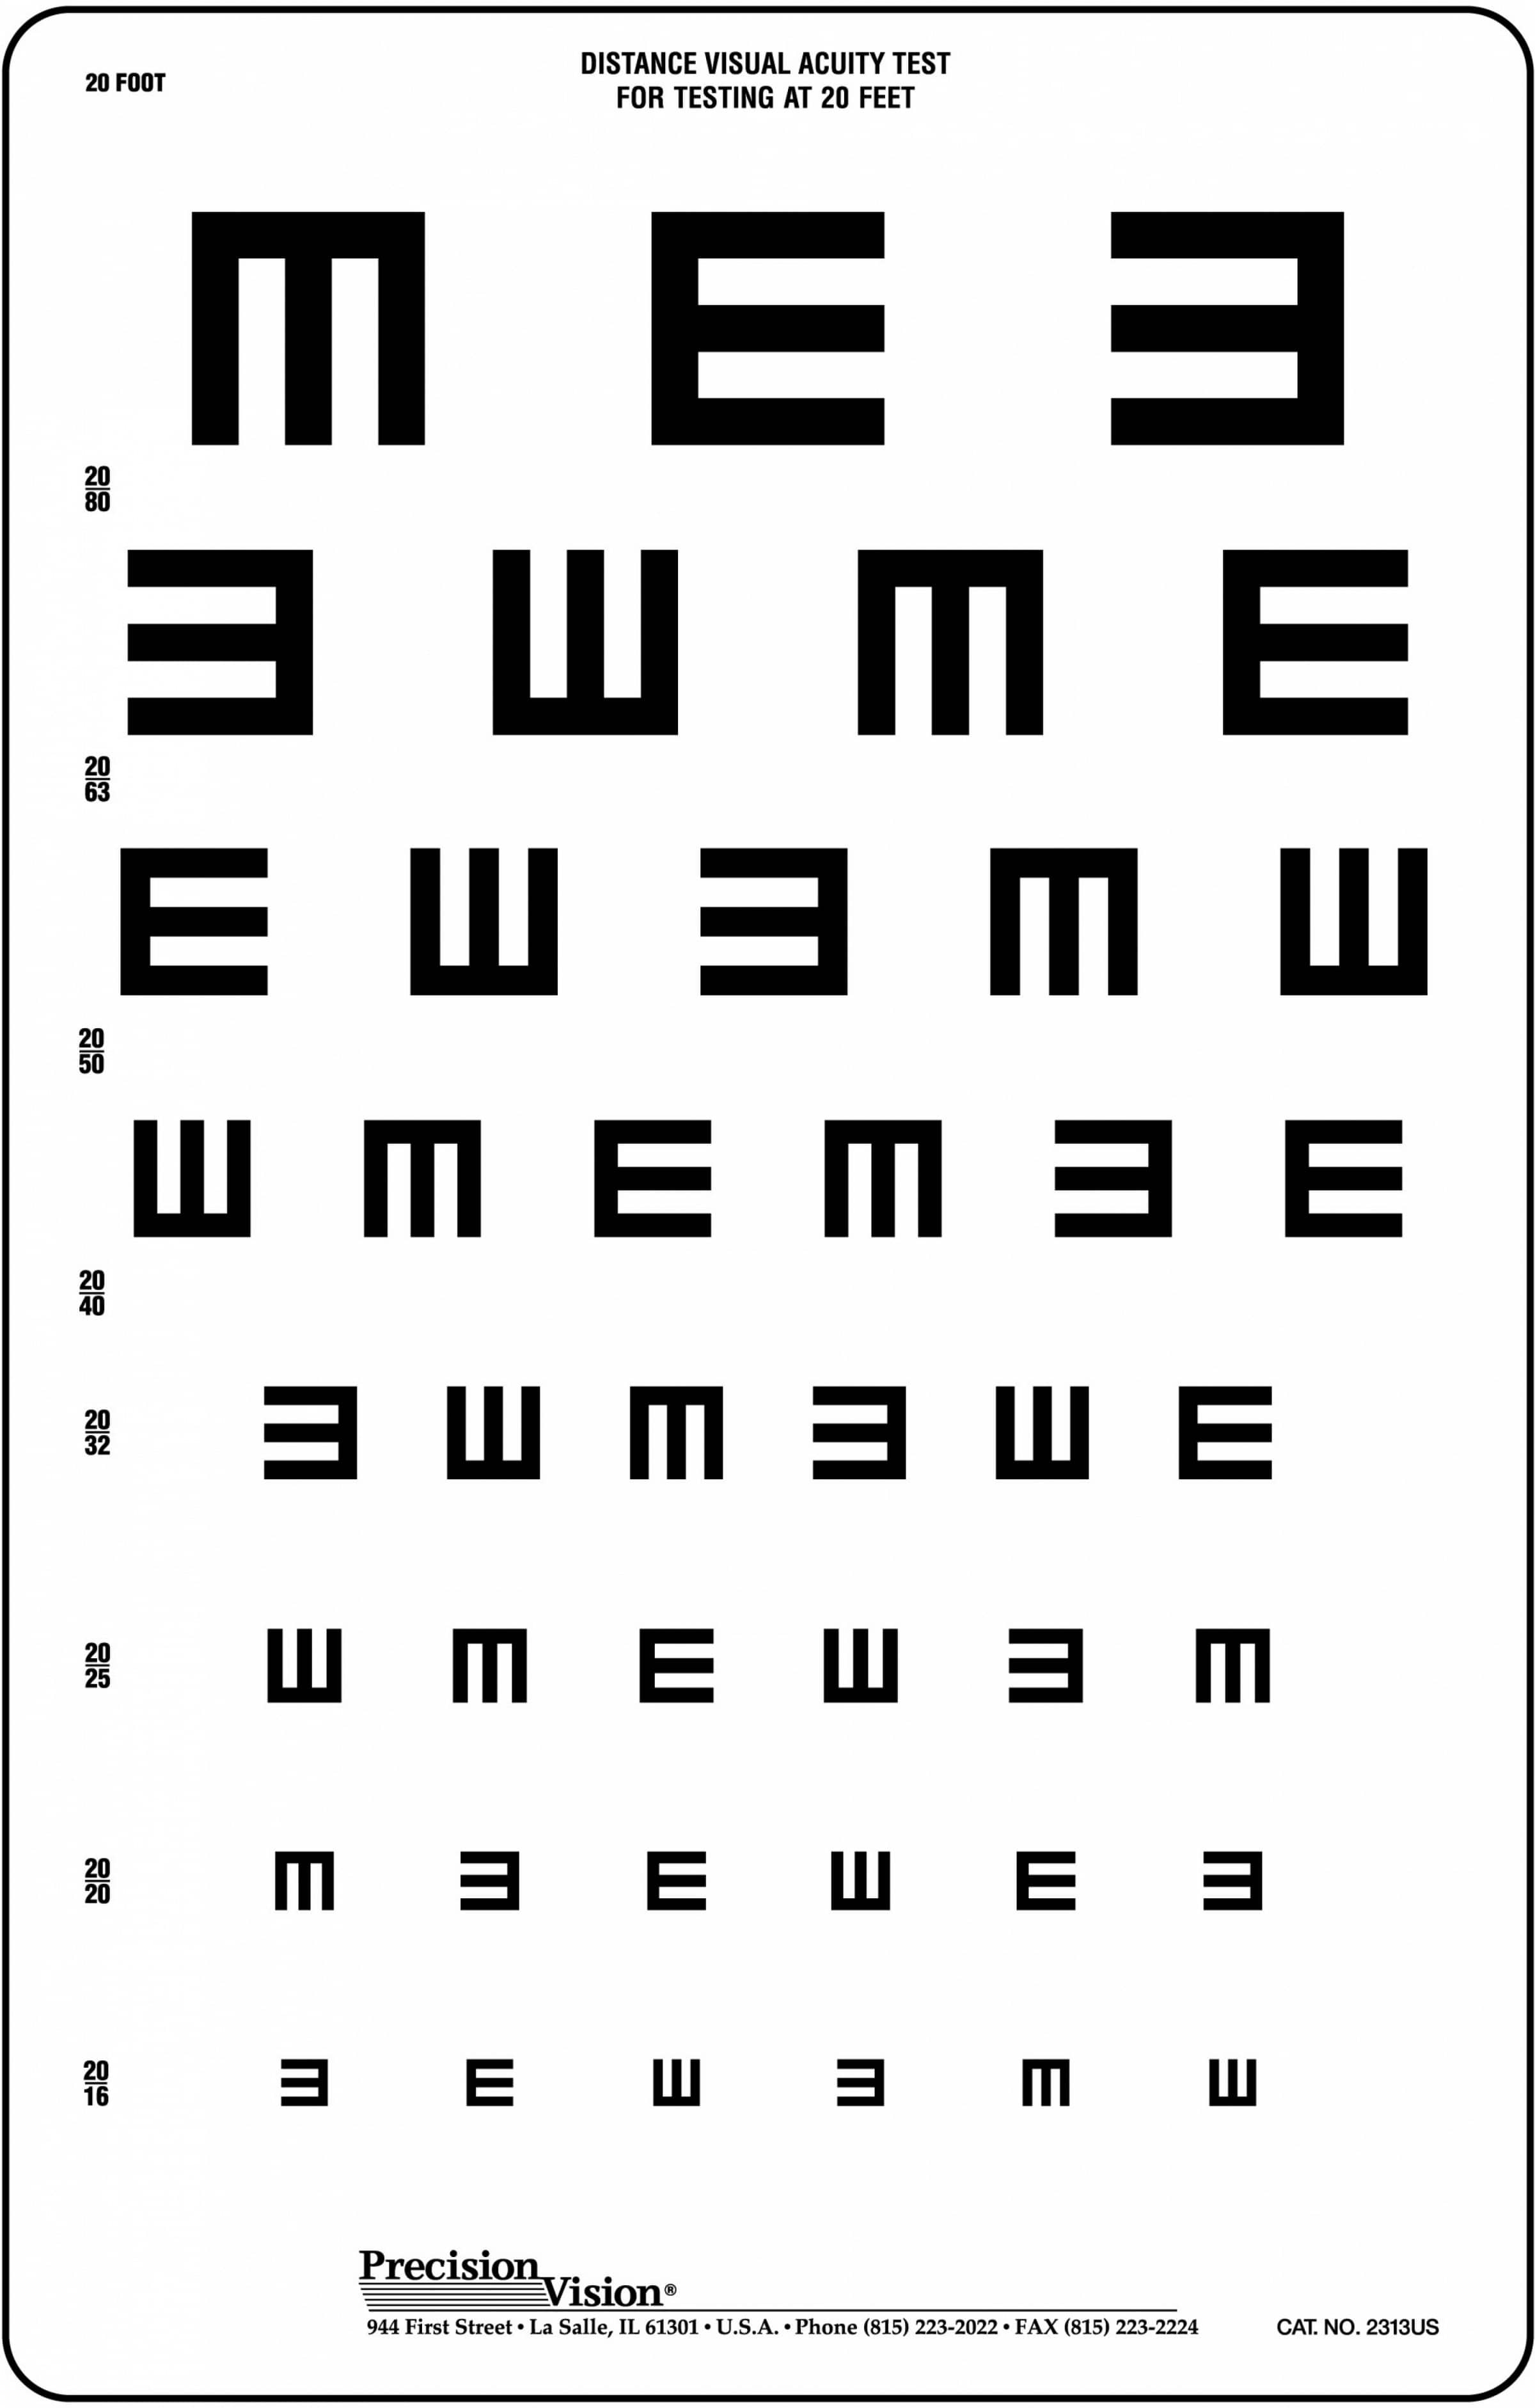 Traditional snellen eye chart precision vision 1725 add to cart nvjuhfo Gallery